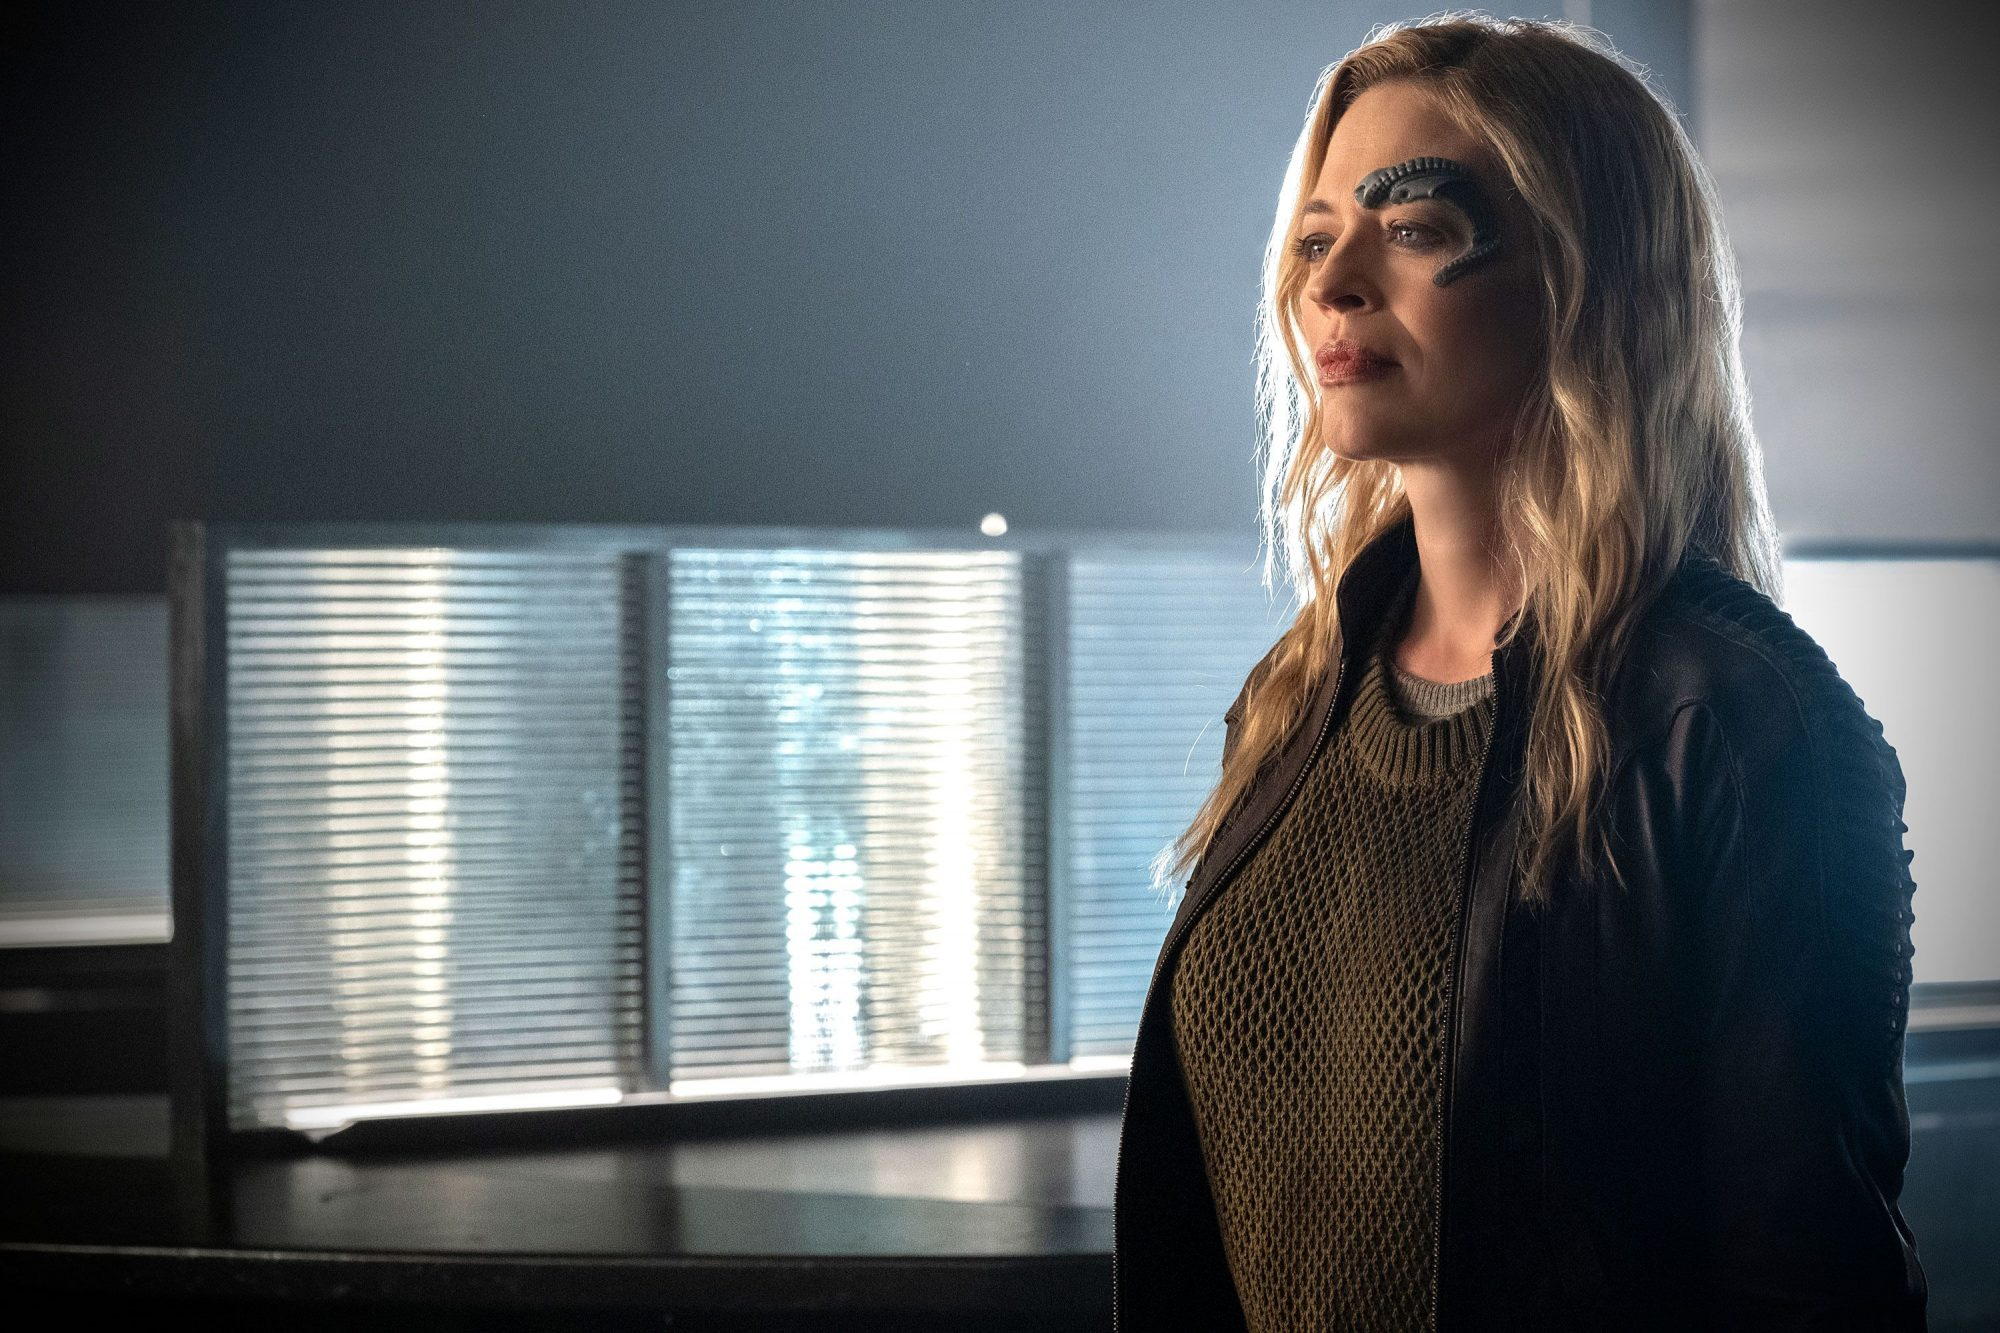 Star Trek Picard Preview with Jeri Ryan as Seven Of Nine